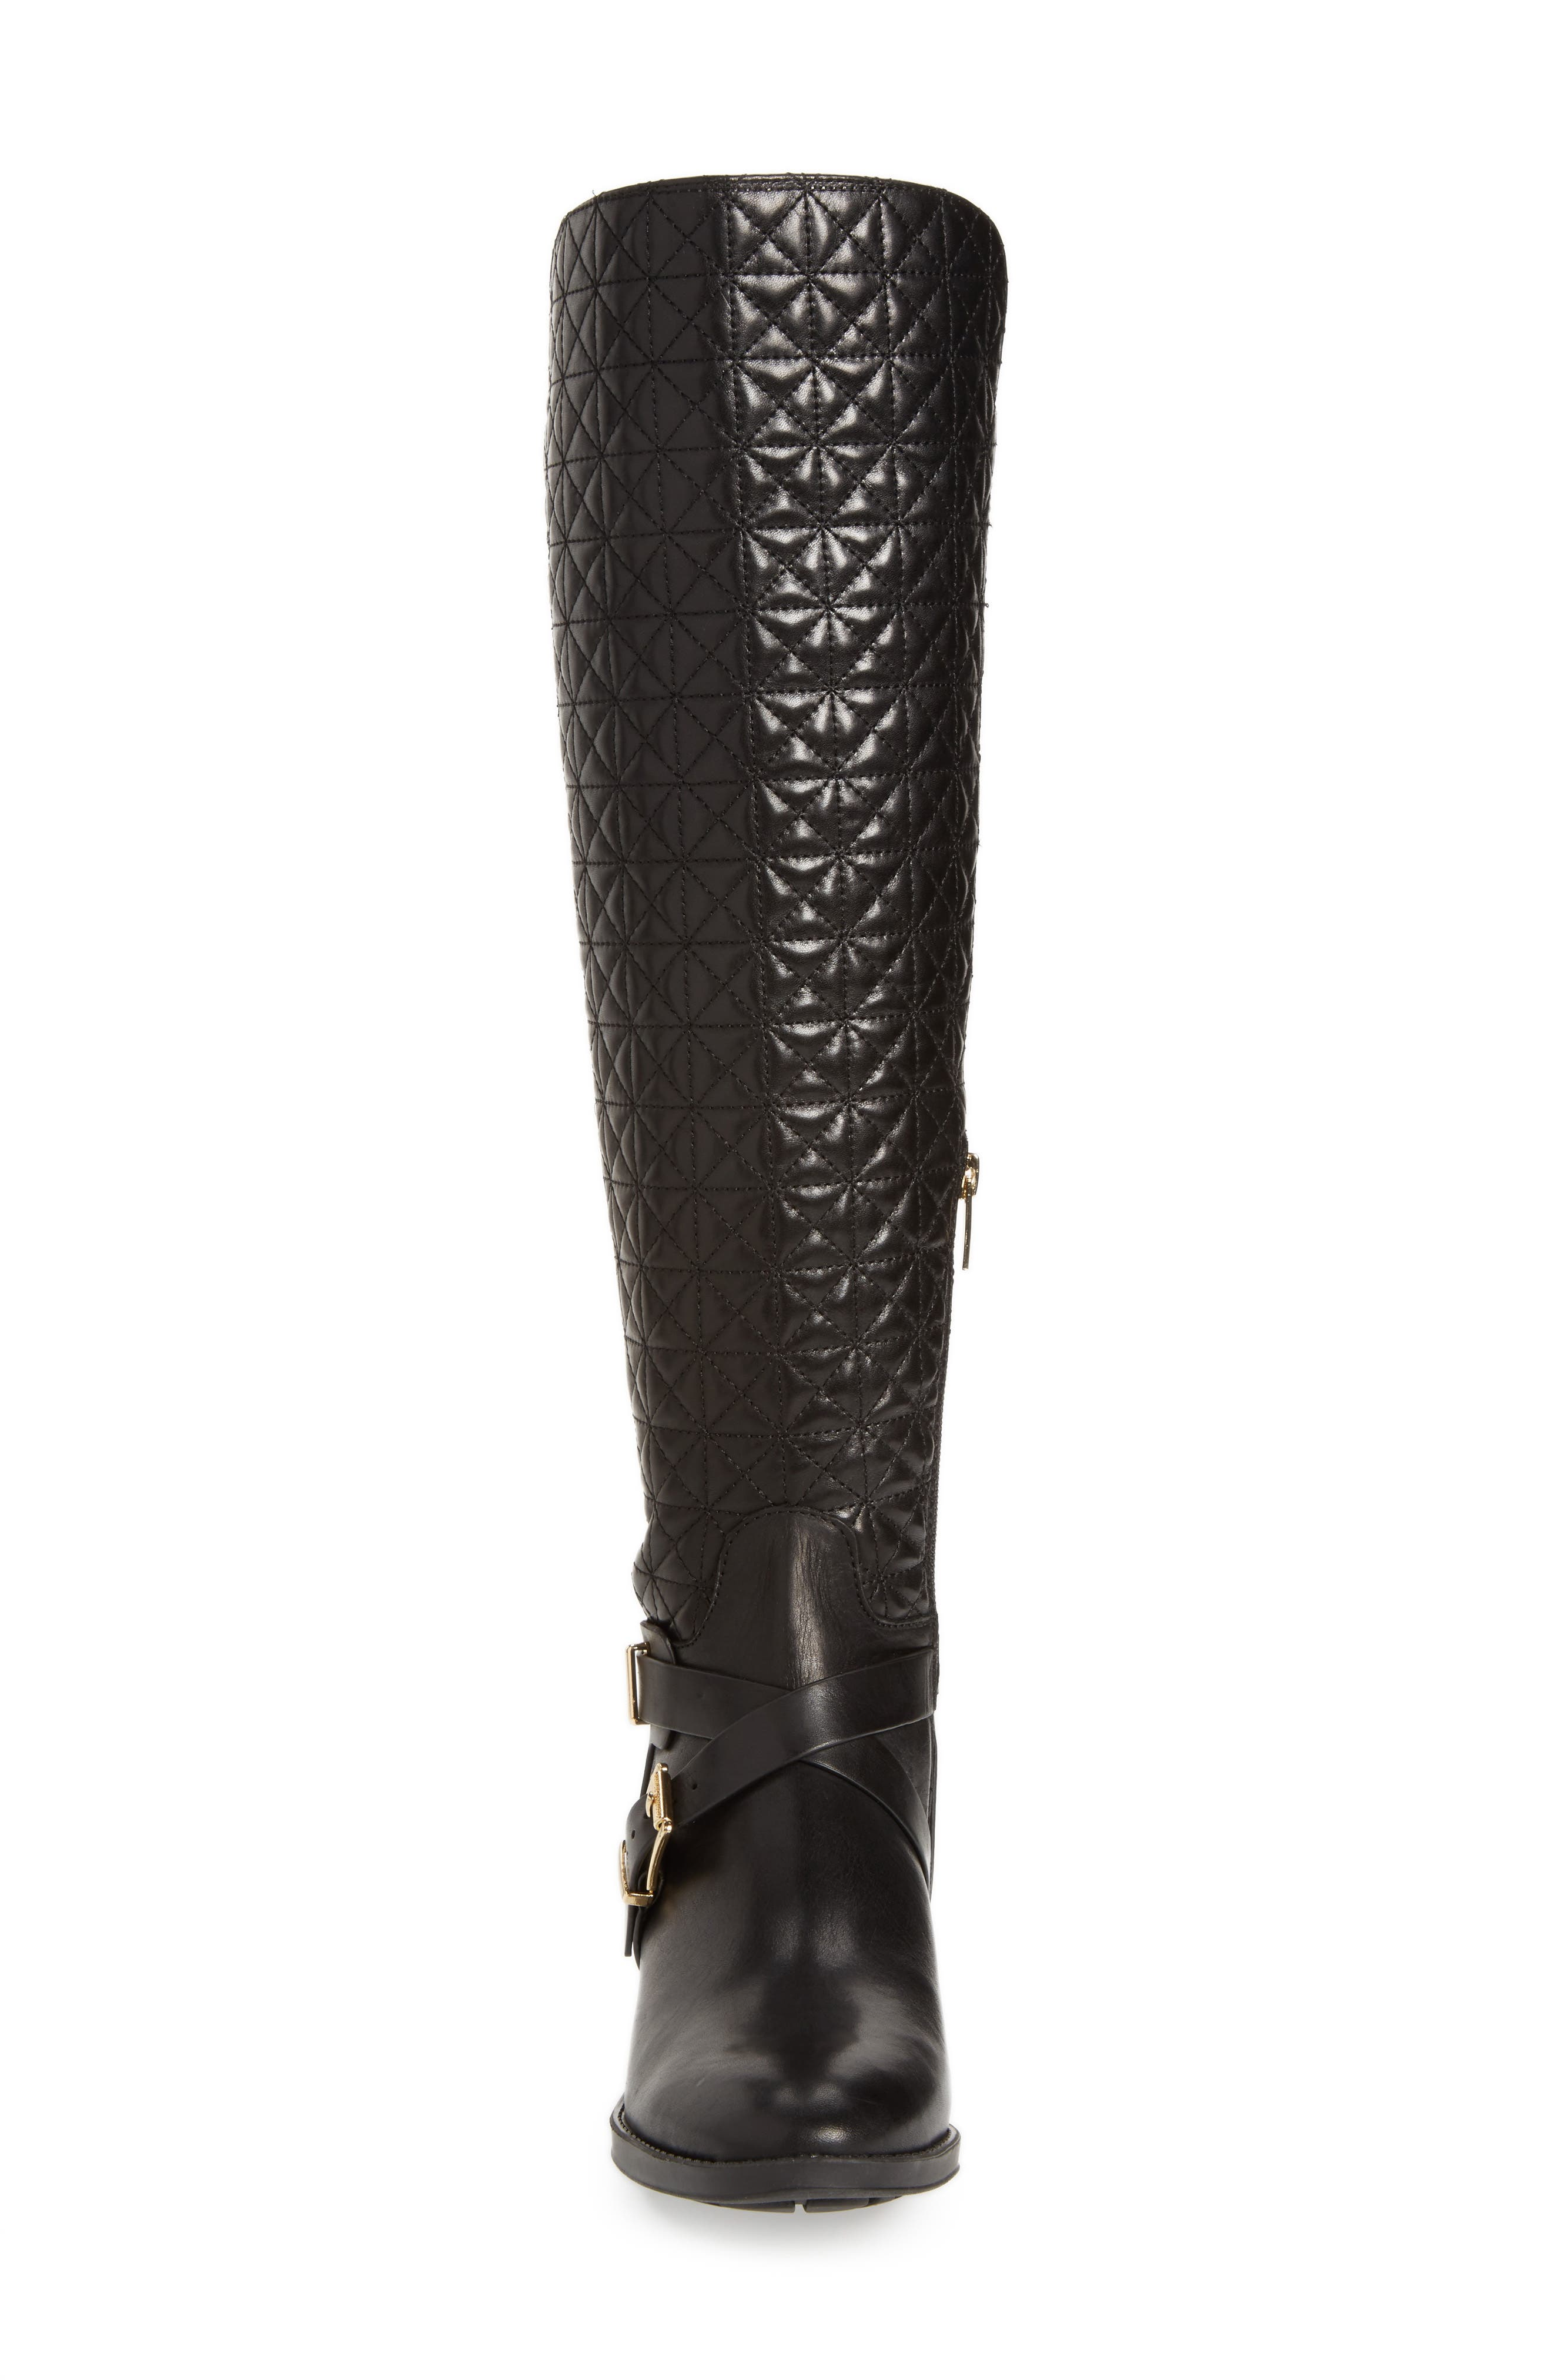 Patira Over the Knee Boot,                             Alternate thumbnail 4, color,                             Black Leather Wide Calf